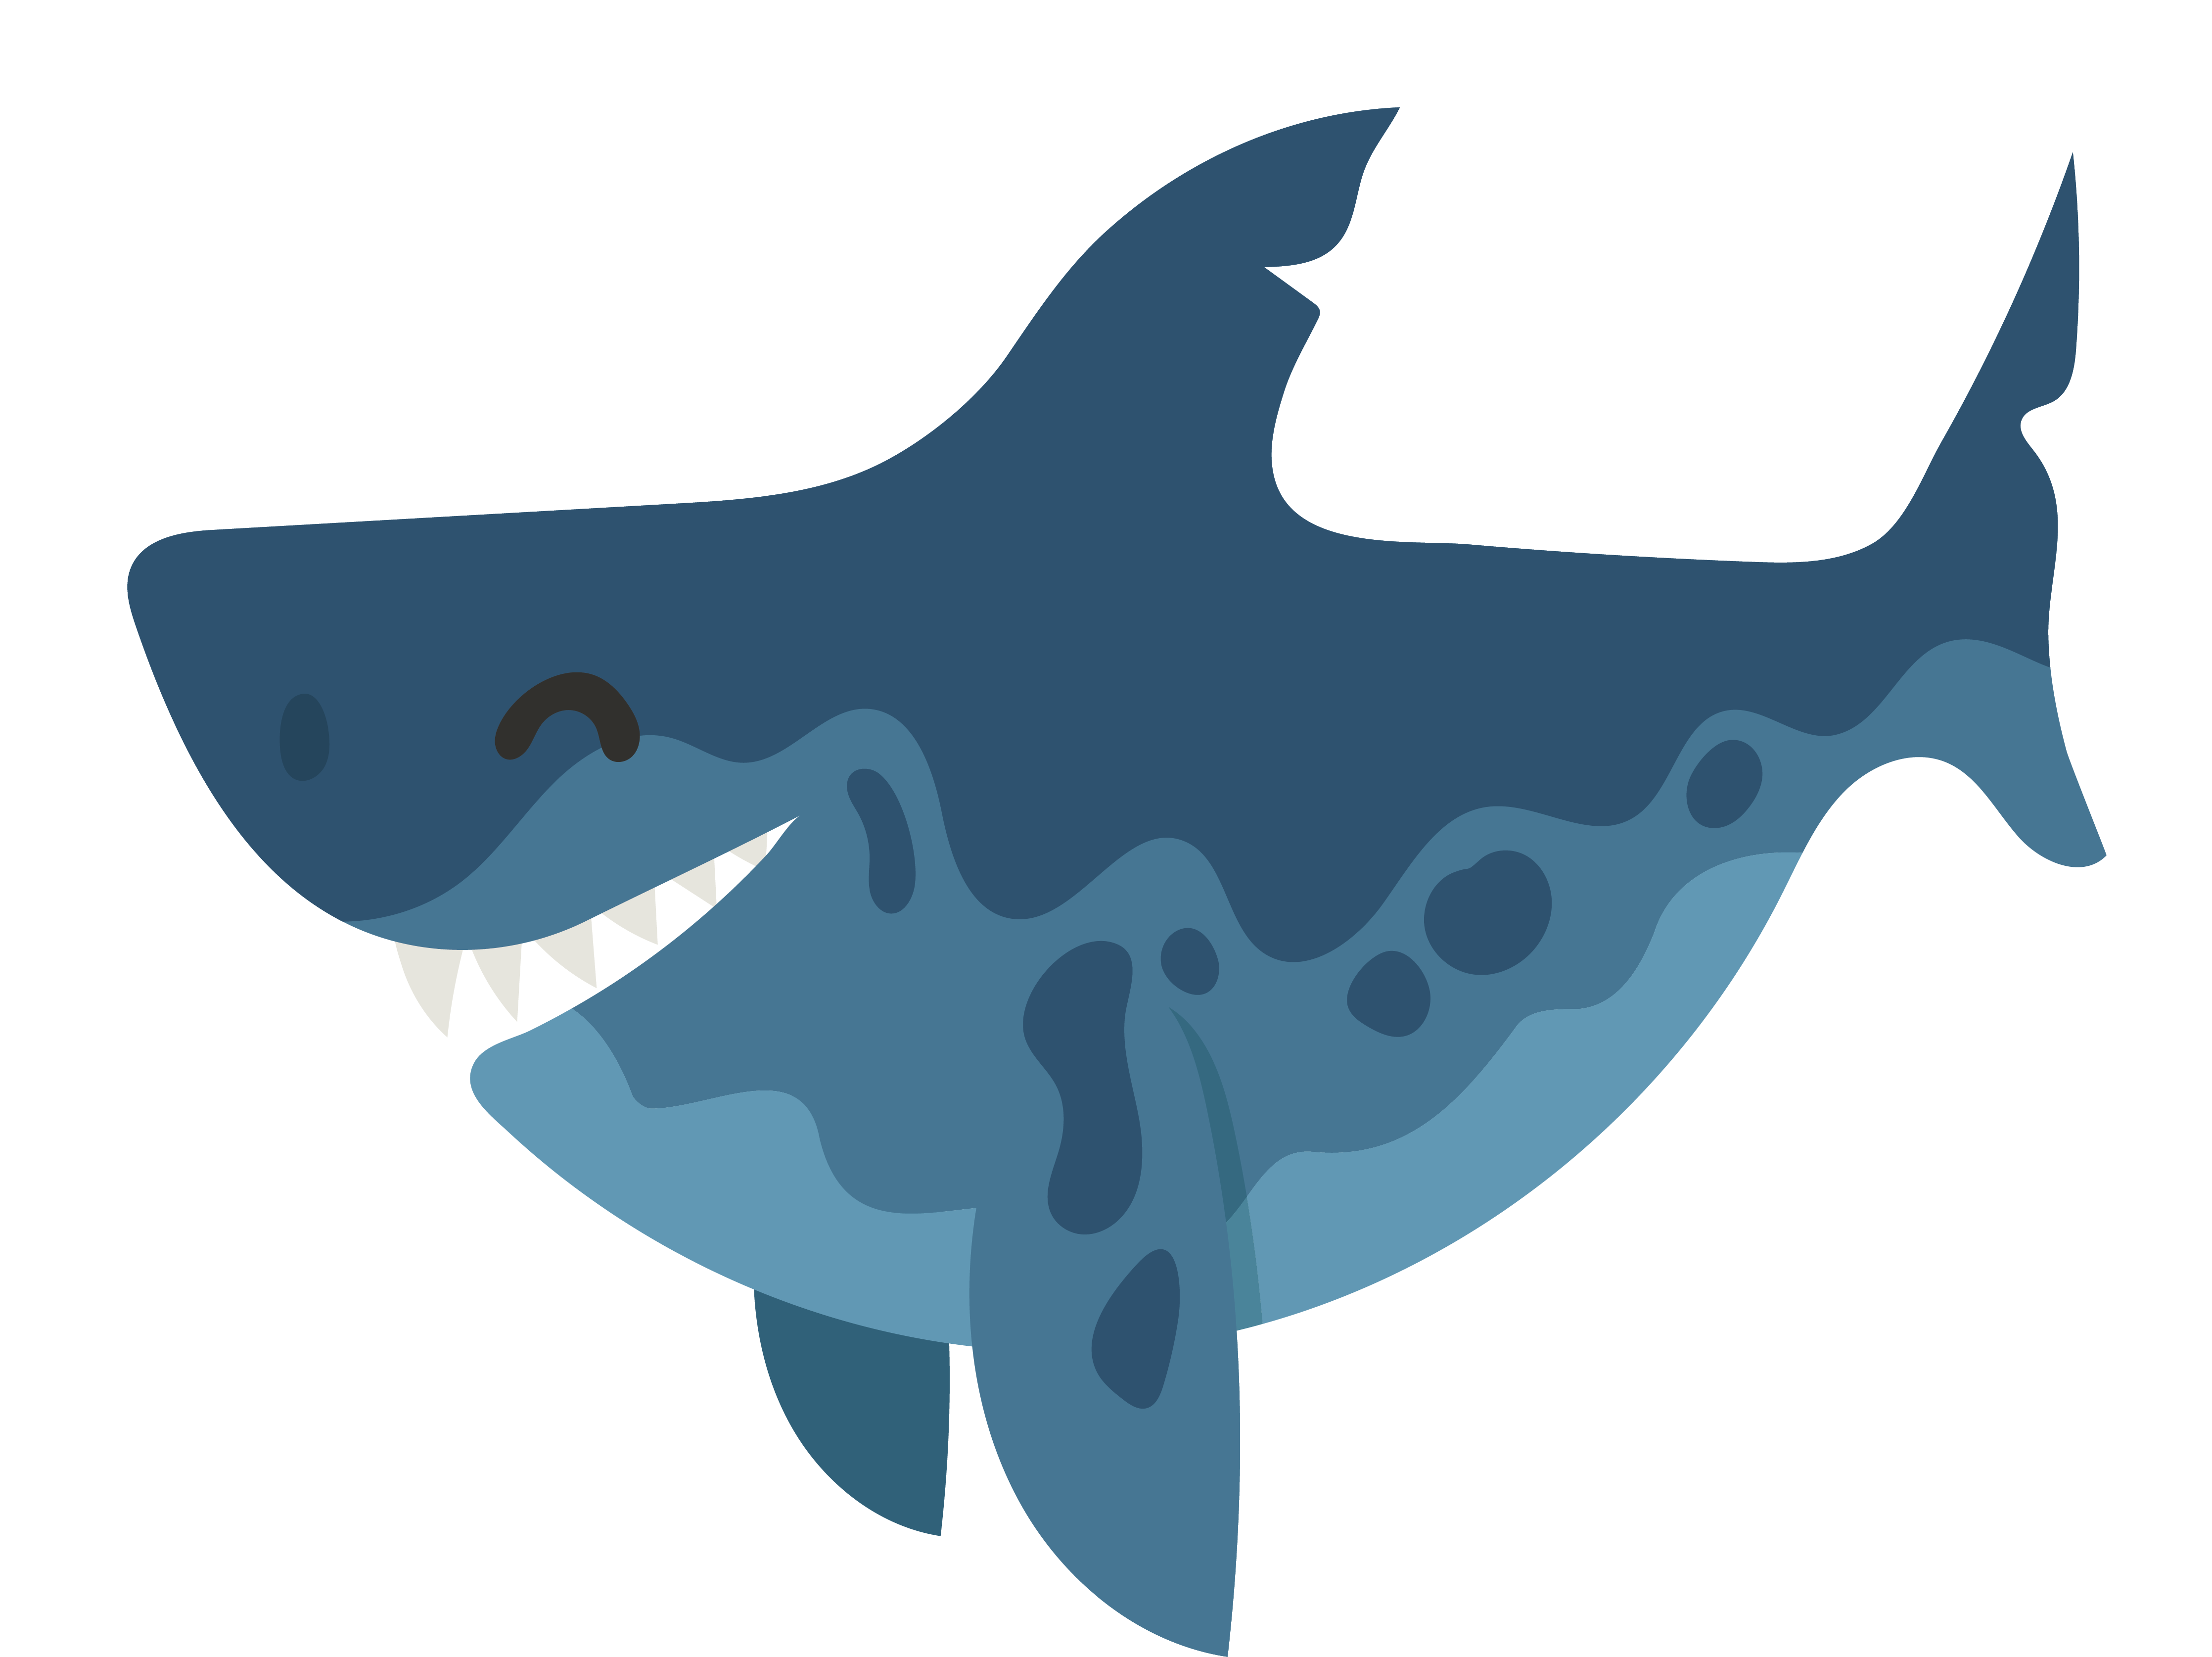 Free clipart of shark eyes and teeth png library stock Shark Fang - The shark teeth png download - 4472*3349 - Free ... png library stock